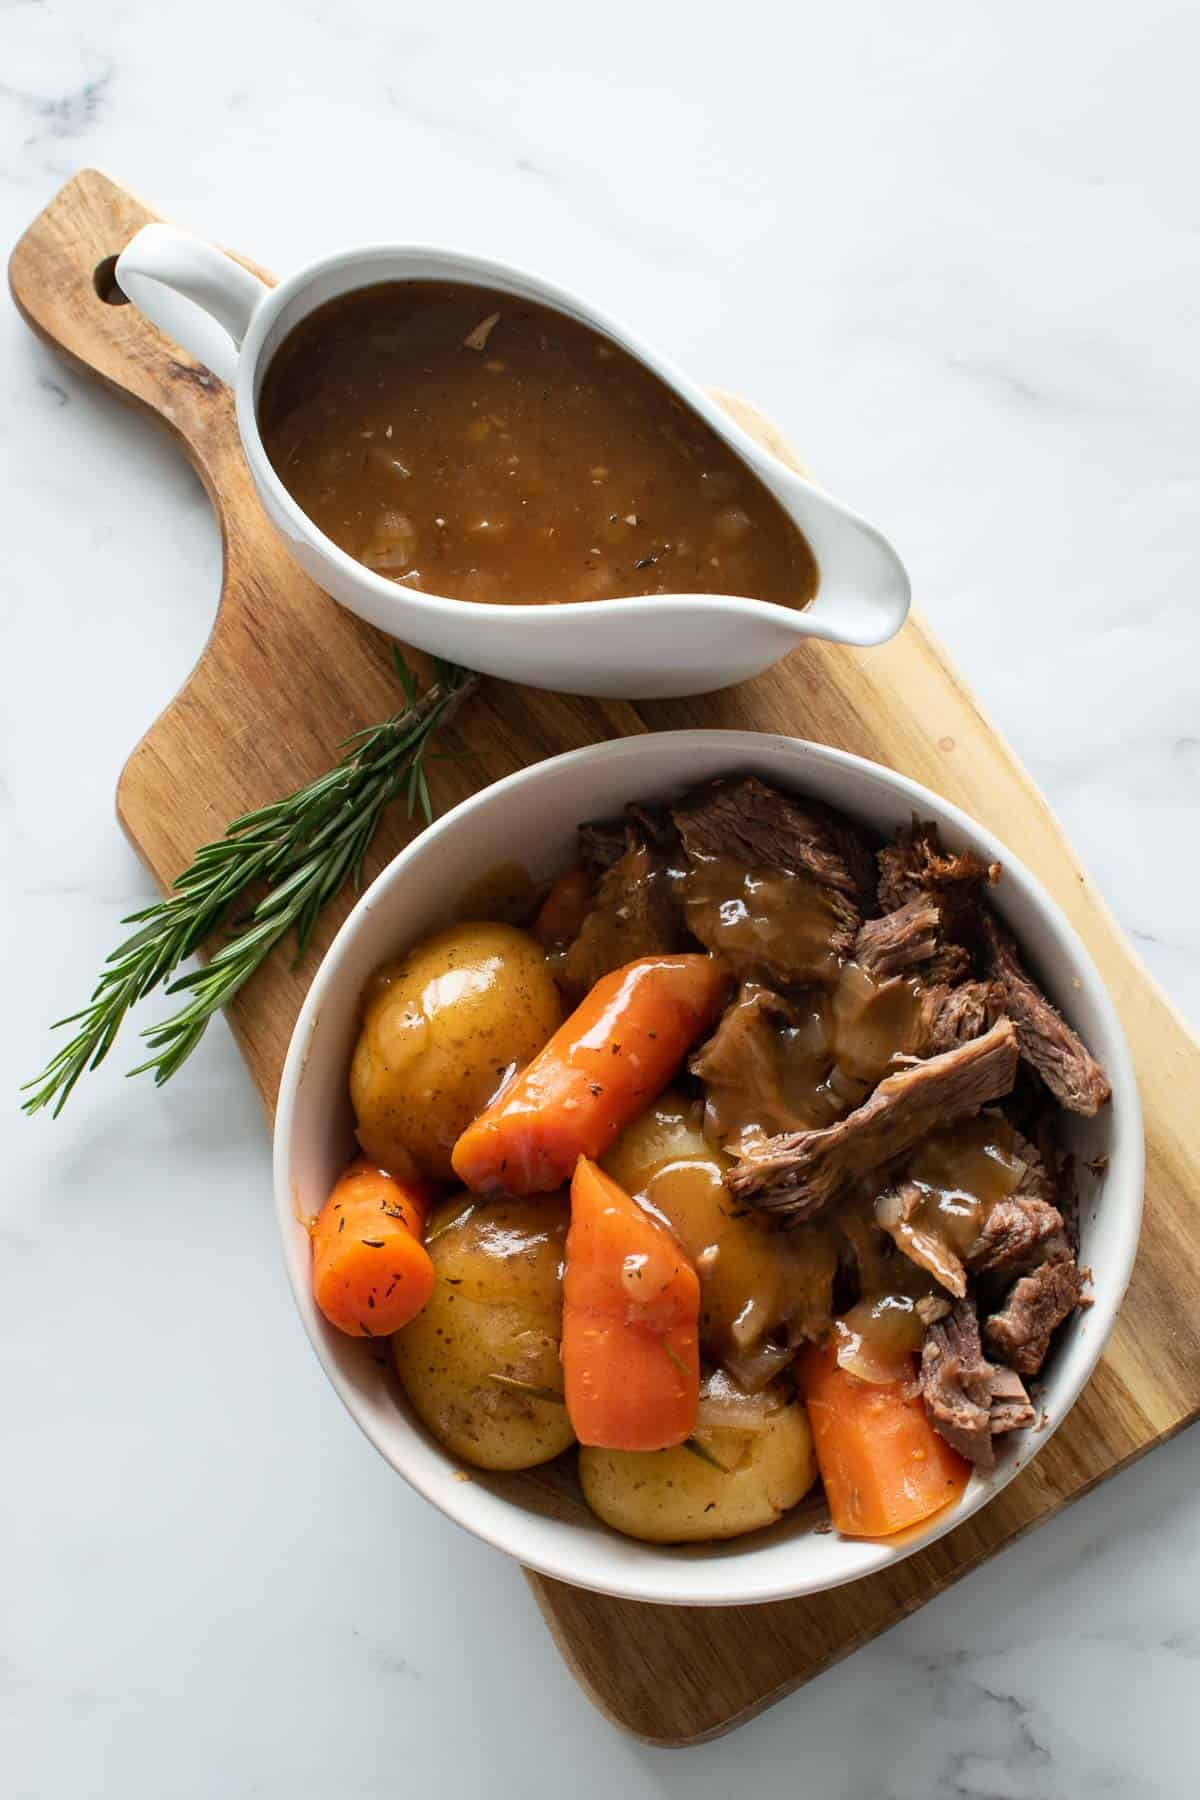 Pressure cooked pot roast and gravy on a wooden board.